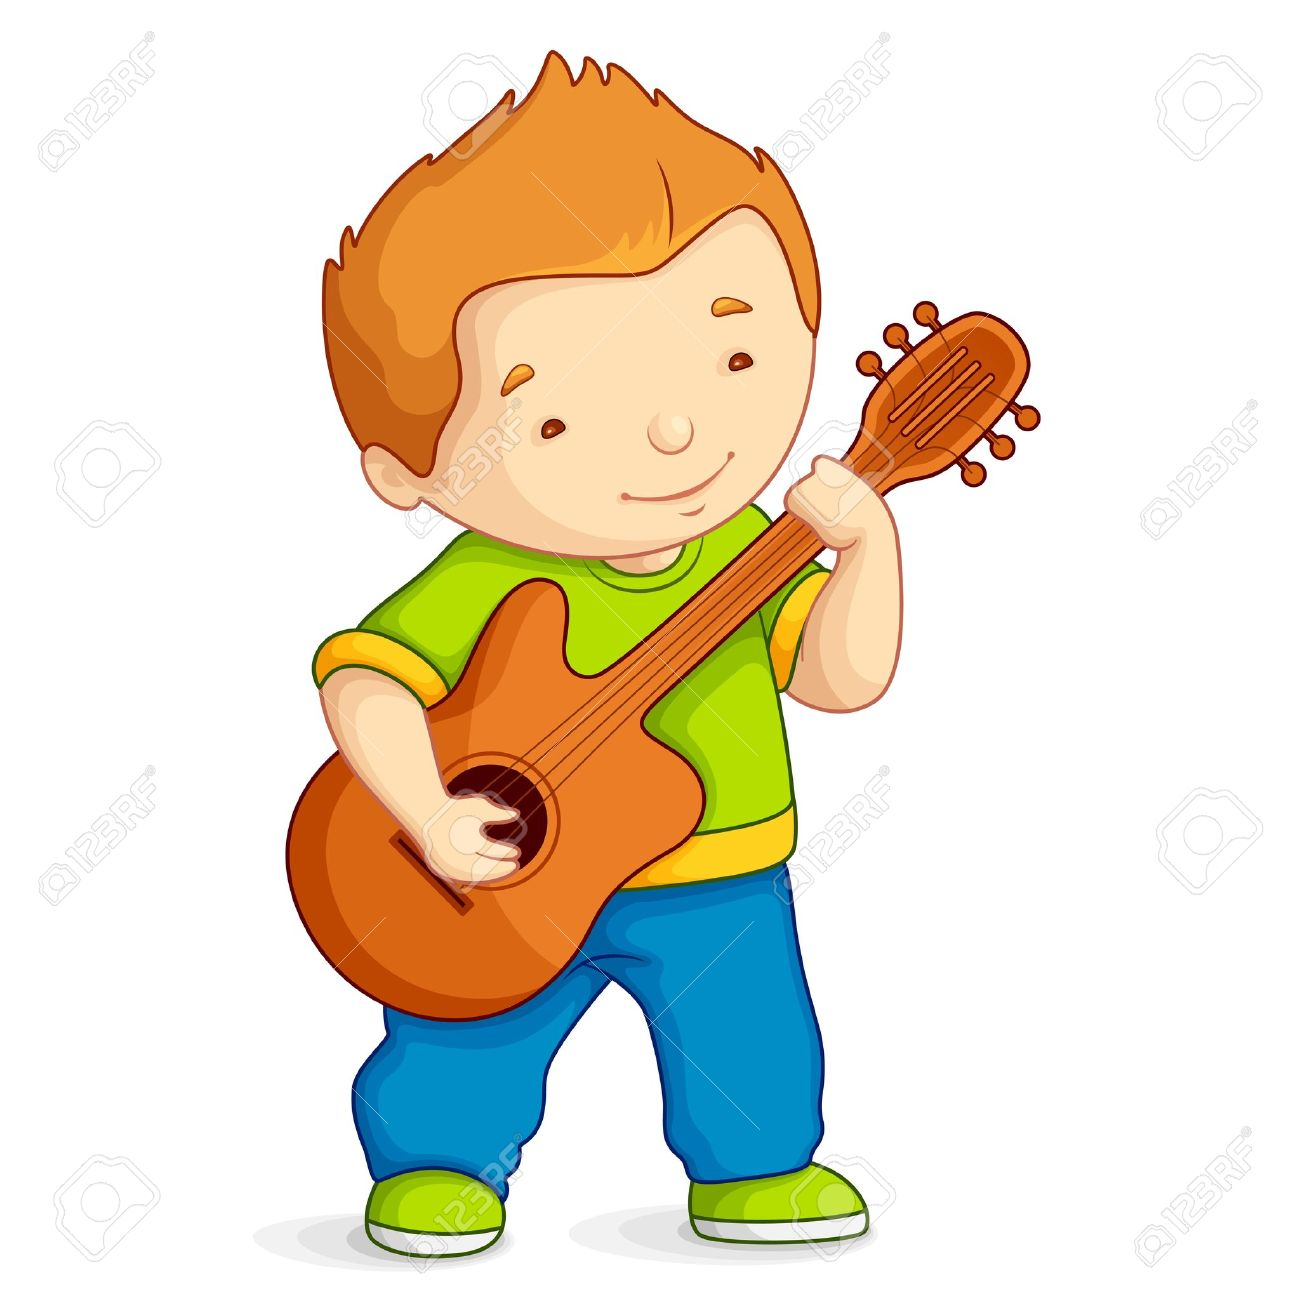 Kid Playing Guitar Royalty Free Cliparts, Vectors, And Stock.